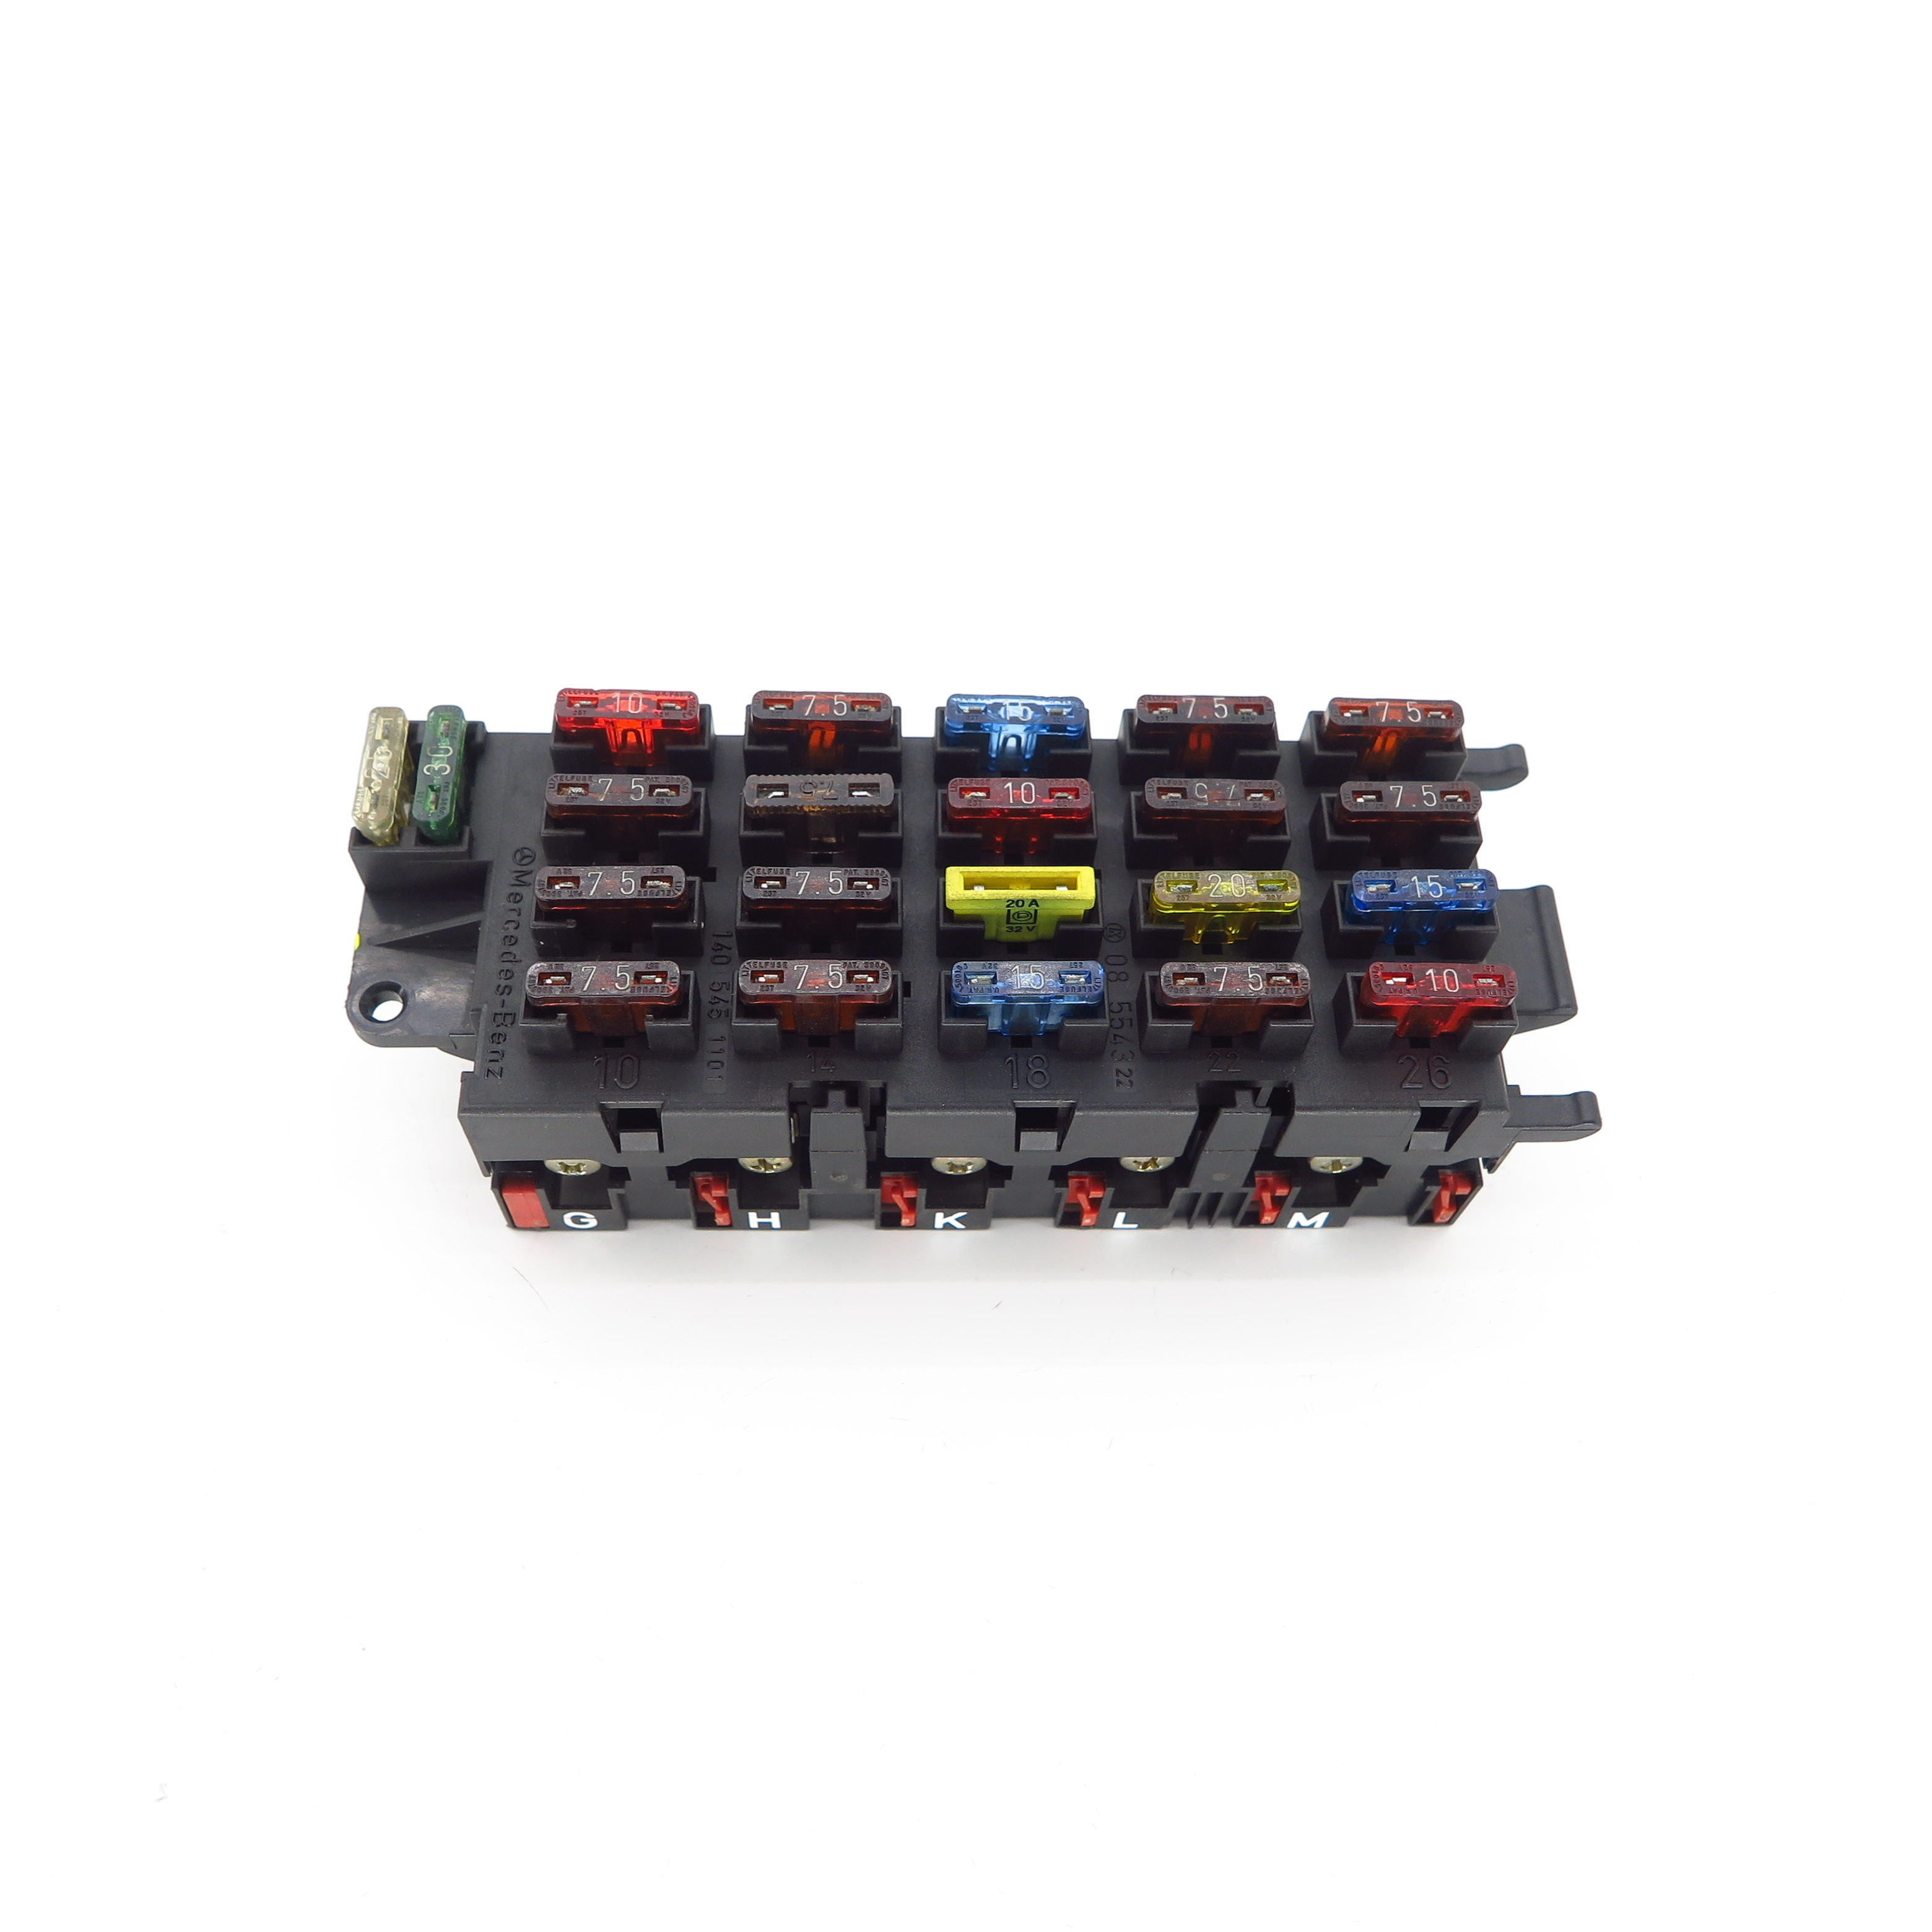 small resolution of 1995 mercedes s420 fuse box location wiring diagram expert 1995 mercedes s420 fuse box location